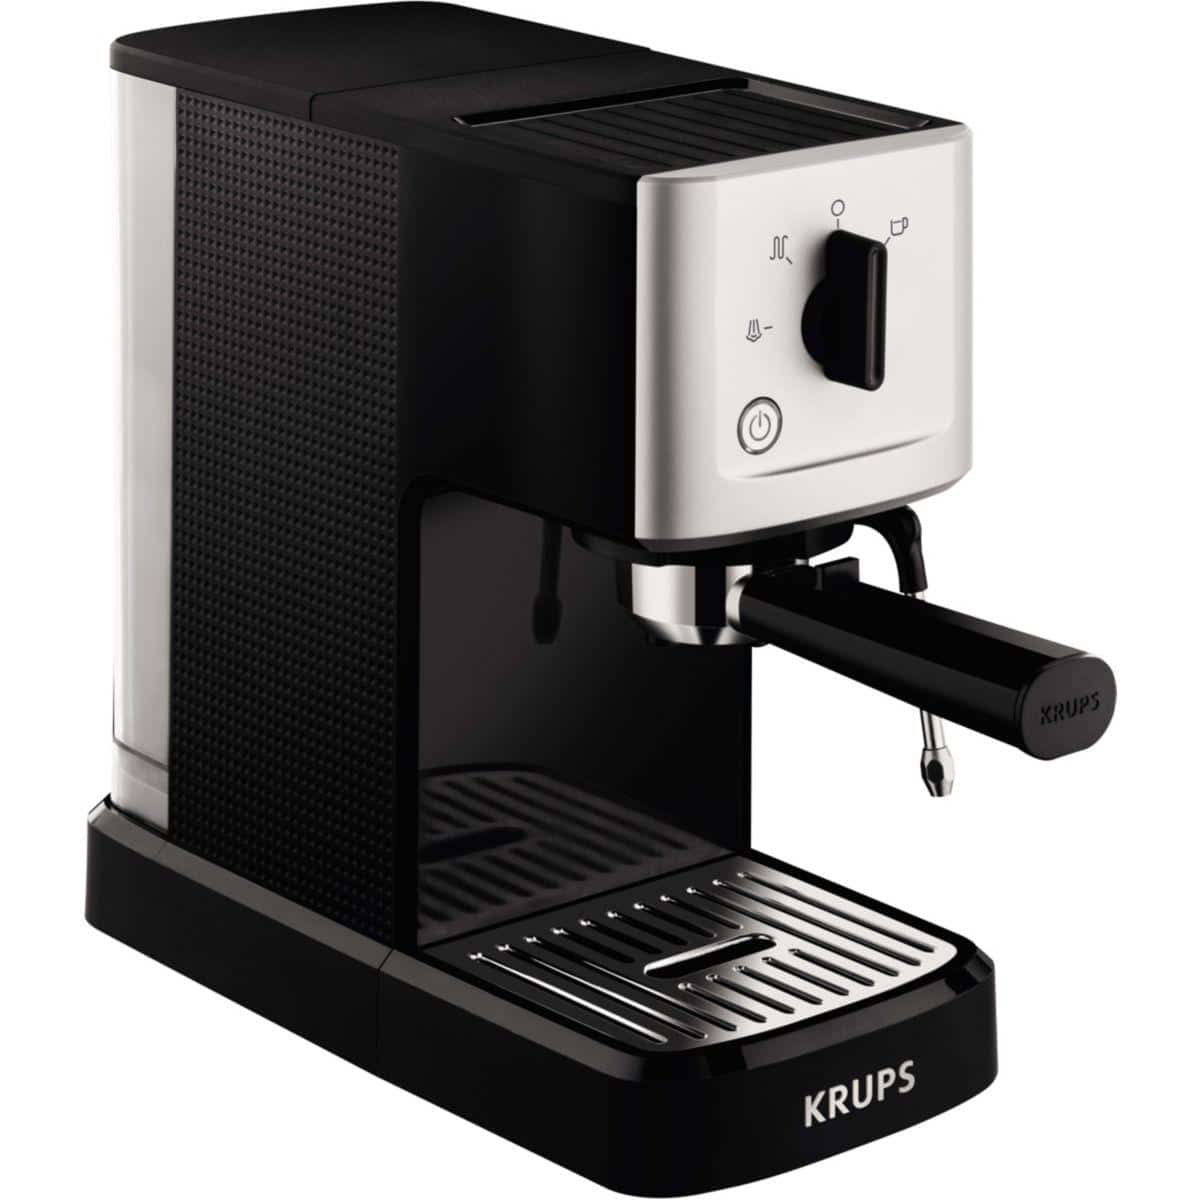 avis machine expresso krups test comparatif. Black Bedroom Furniture Sets. Home Design Ideas